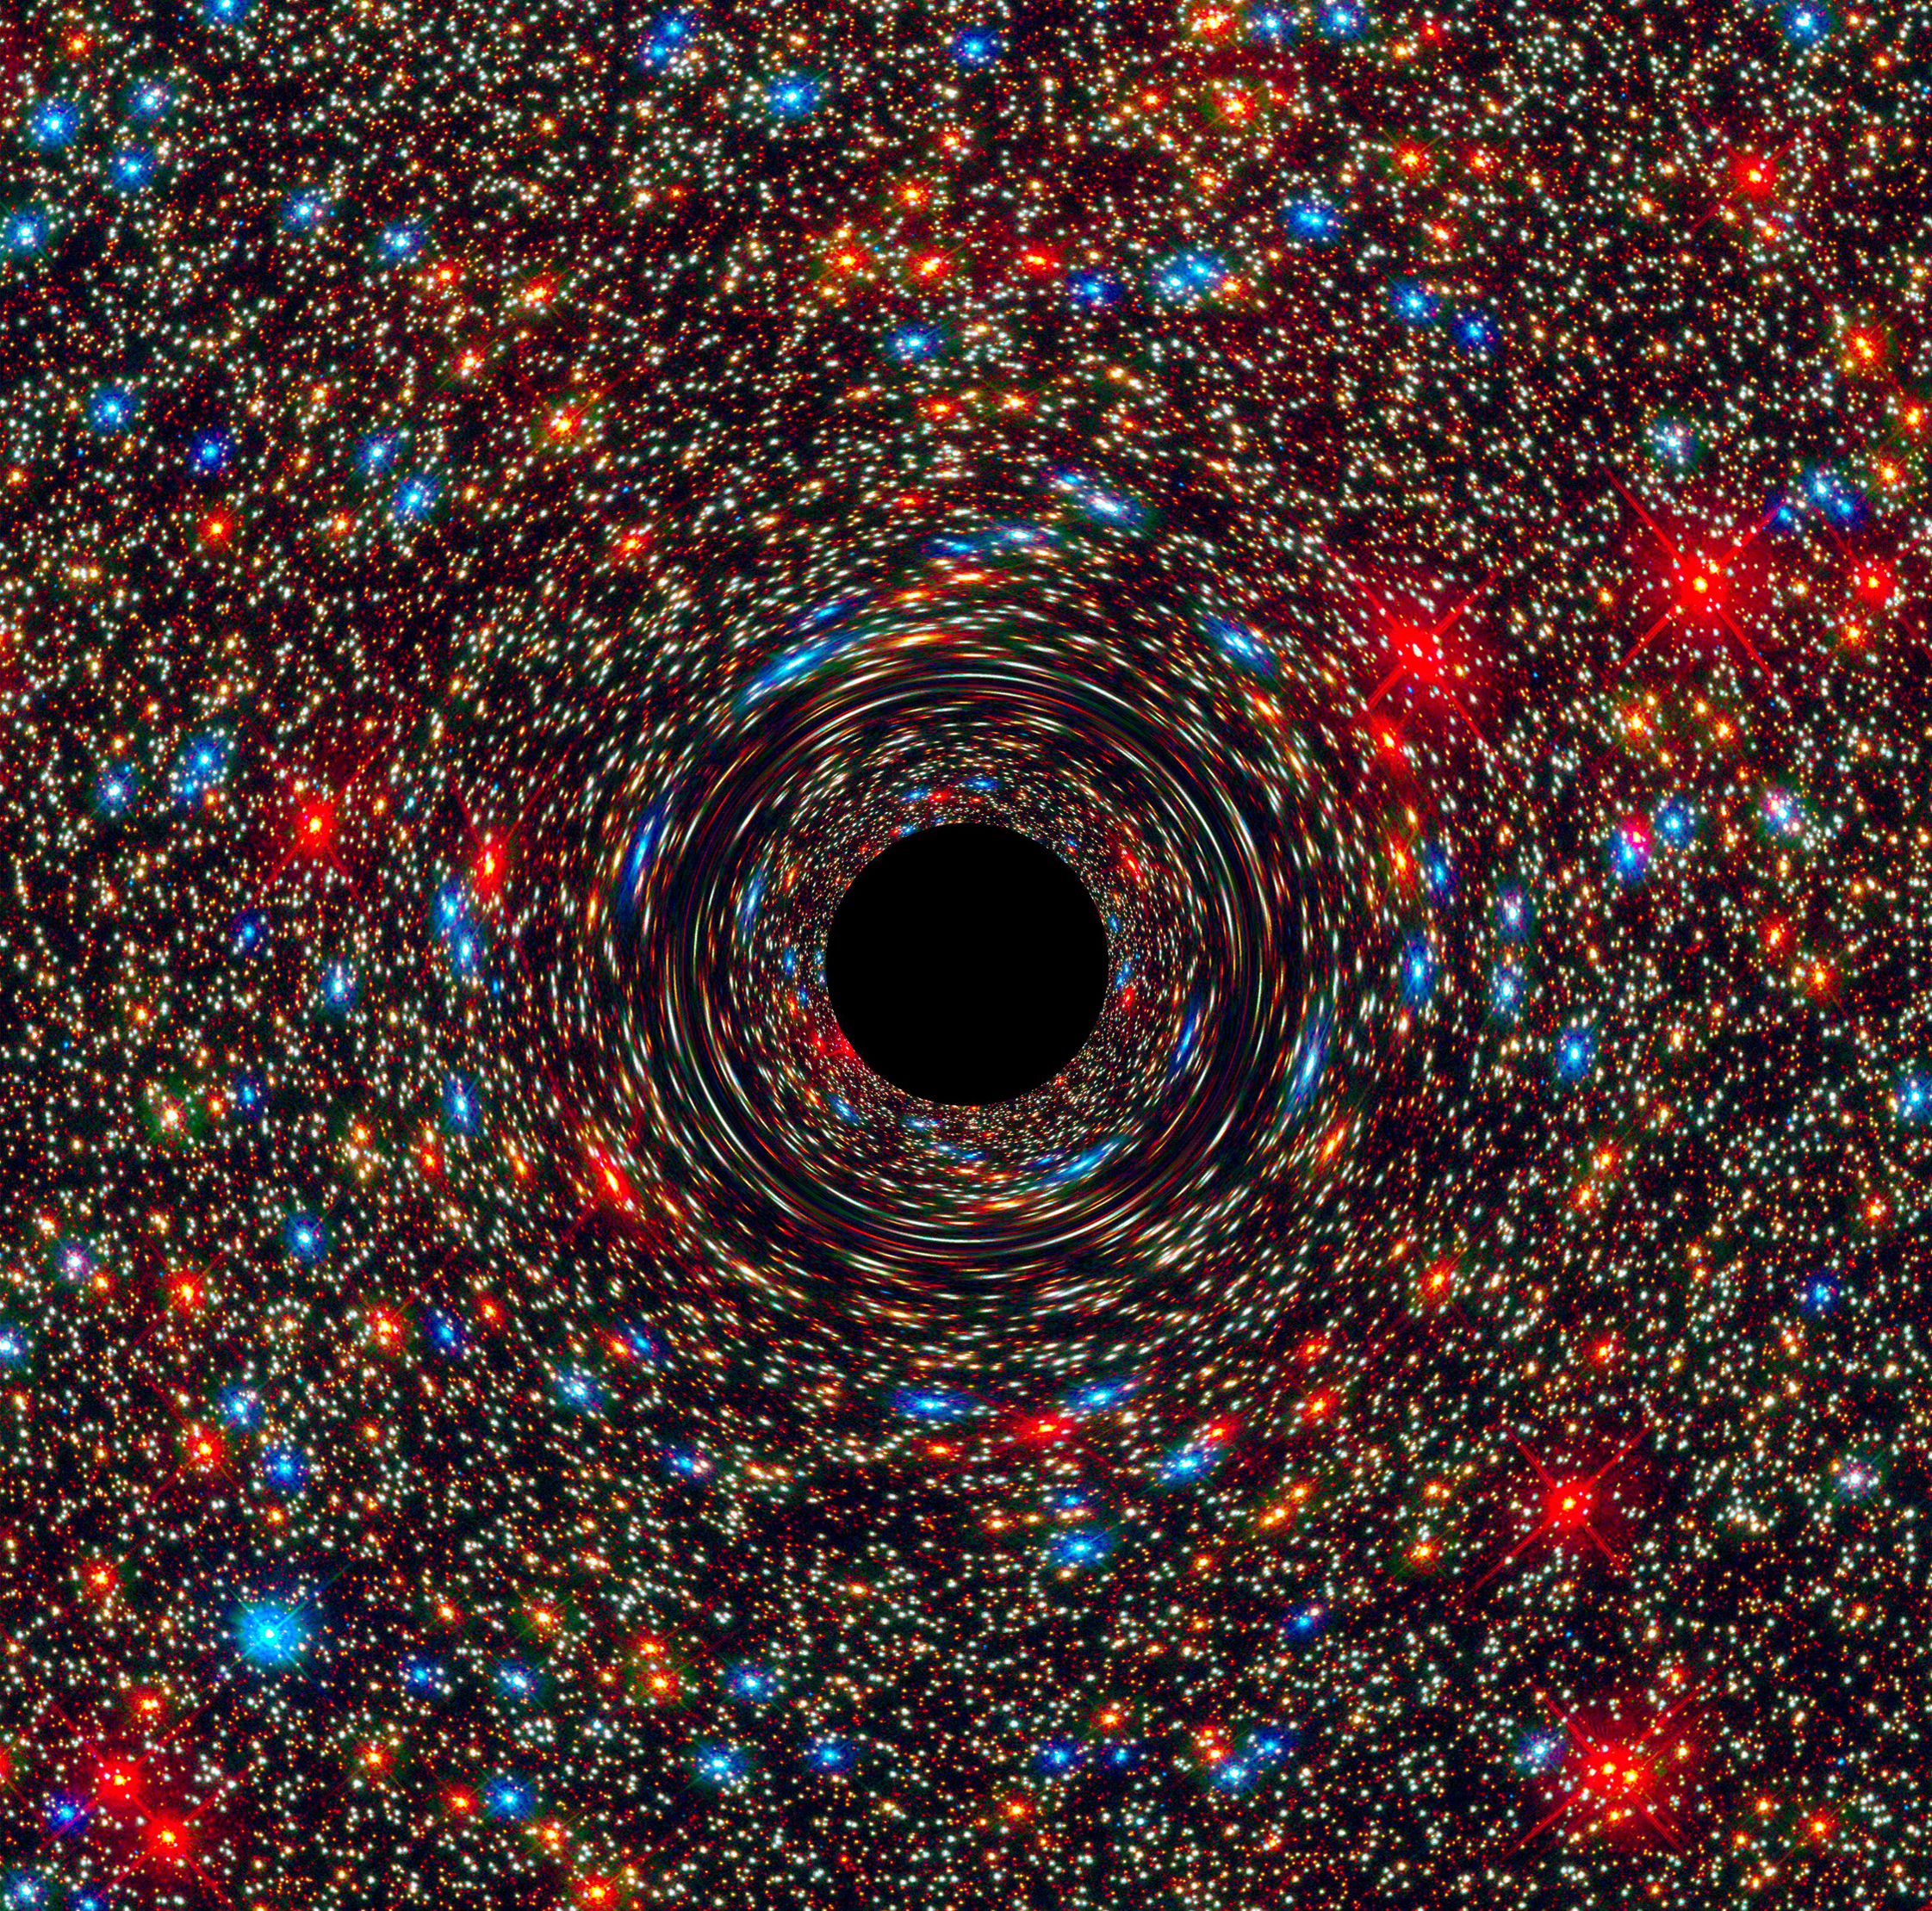 Behemoth Black Hole Found in an Unlikely Place | NASA